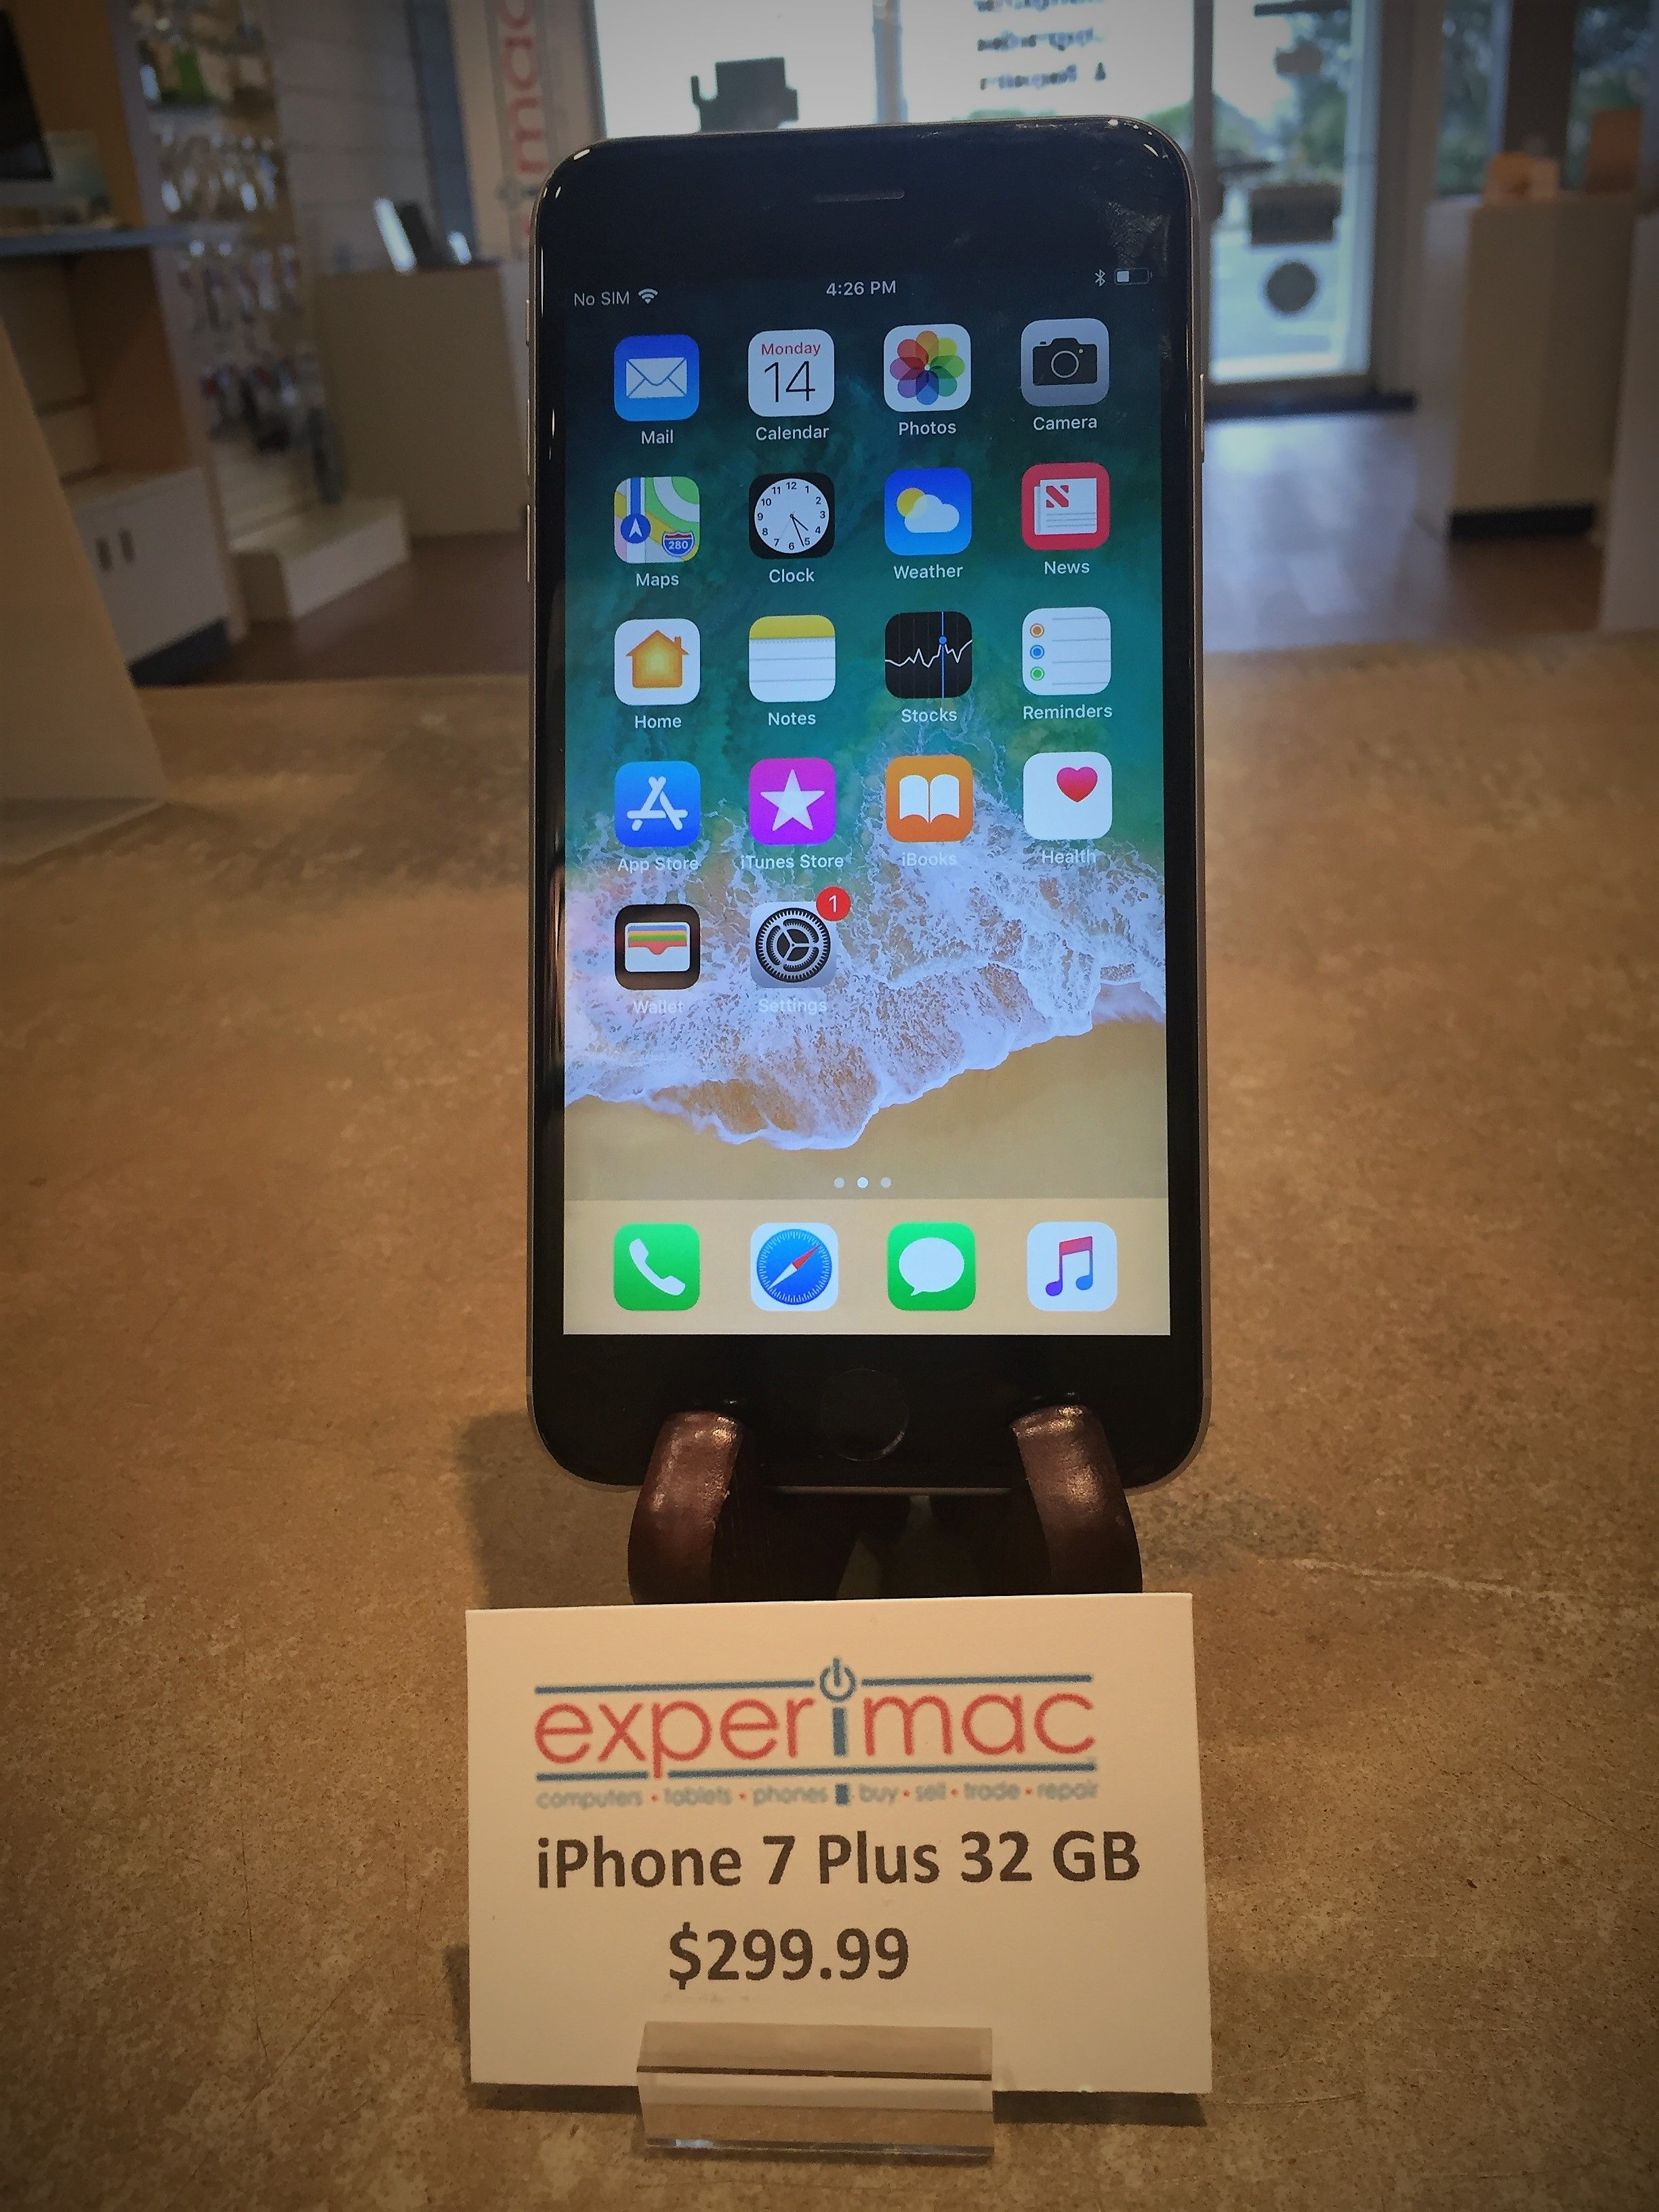 iPhone 7 Plus, 32 GB (Verizon) Looking for a great deal on